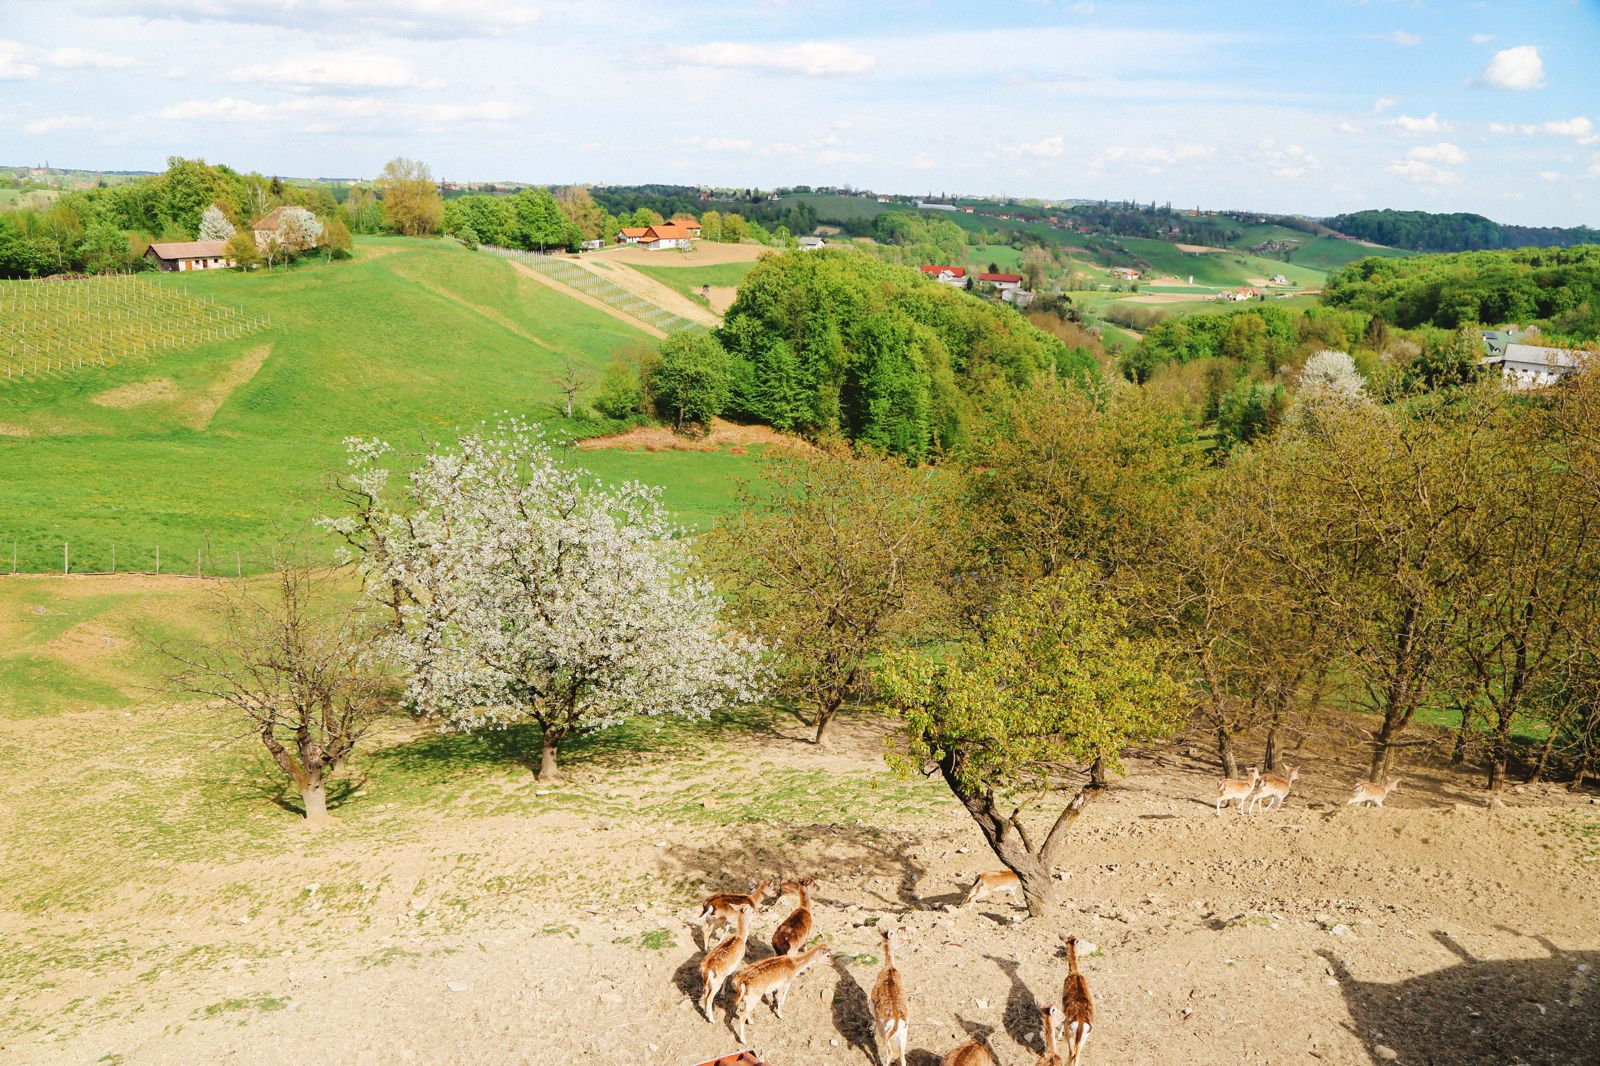 Vineyards, Charcuterie And The Old Historic City Of Maribor, Slovenia (13)